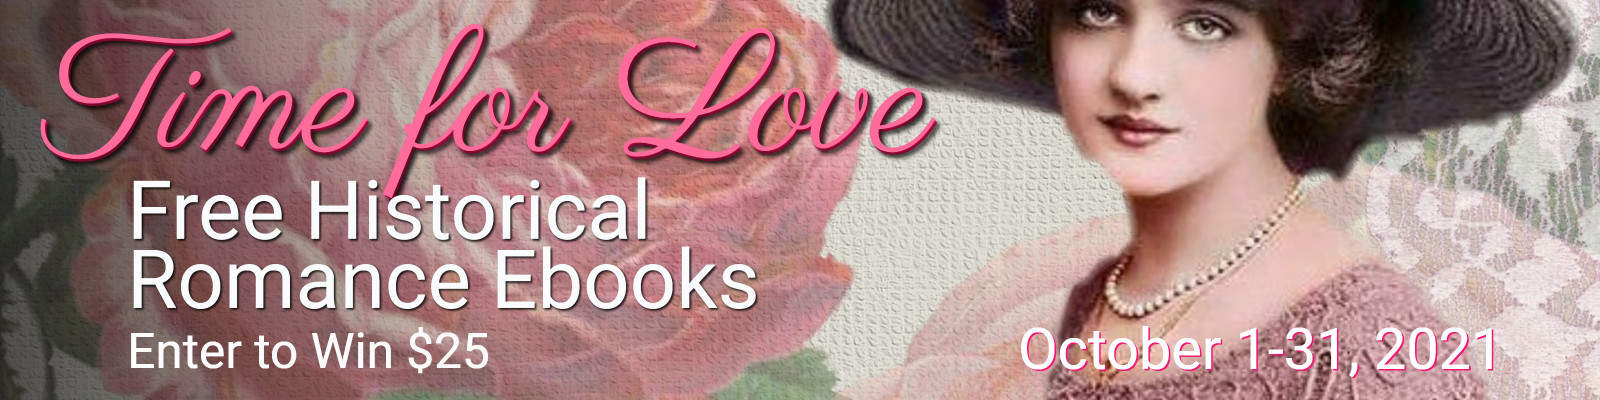 Time for Love Historical Romance